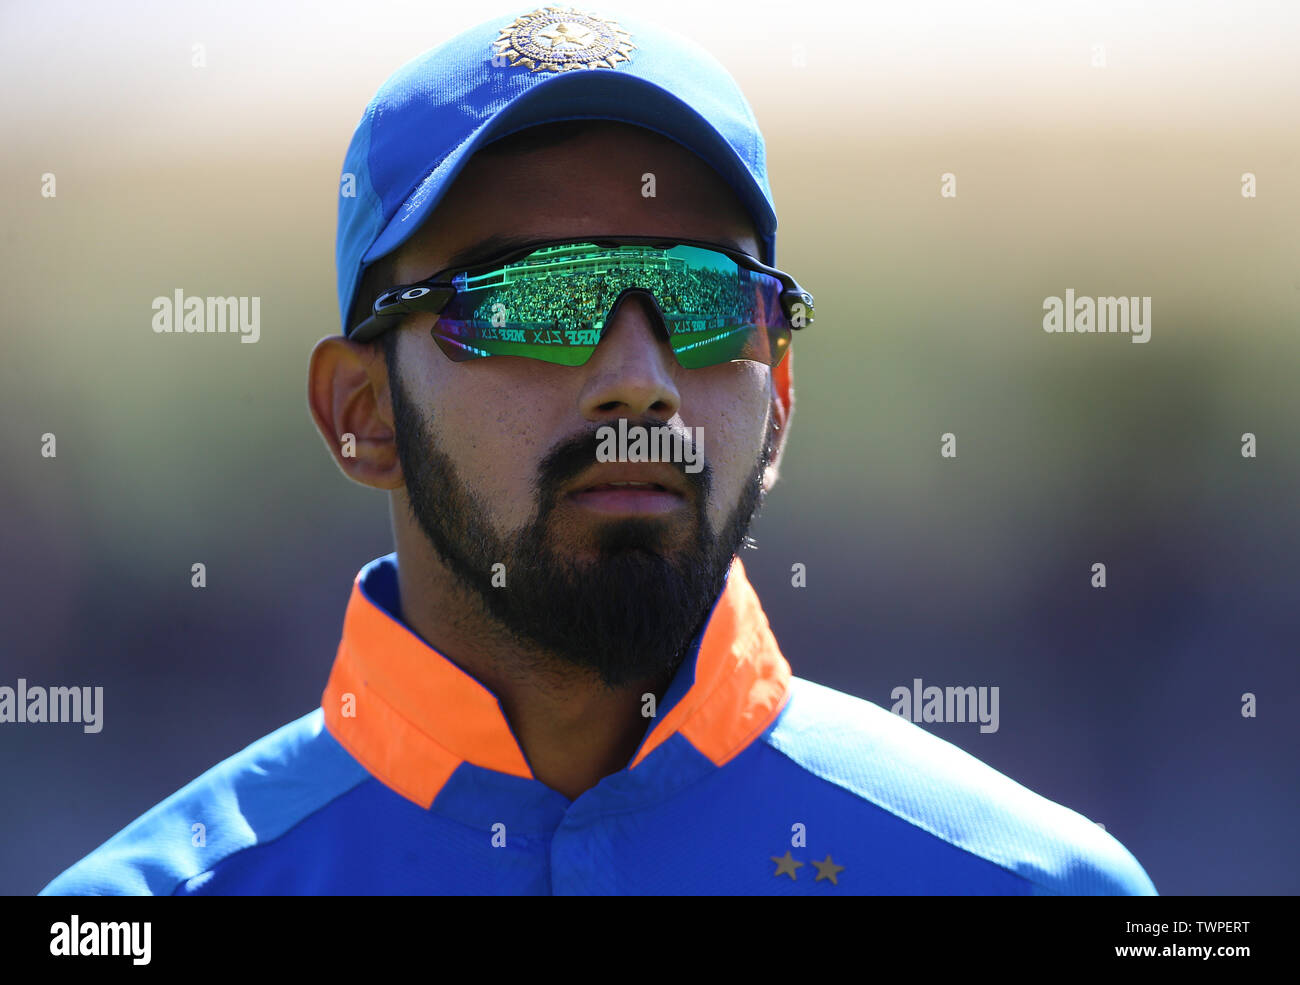 India's KL Rahul during the ICC Cricket World Cup group stage match at the Hampshire Bowl, Southampton. Stock Photo